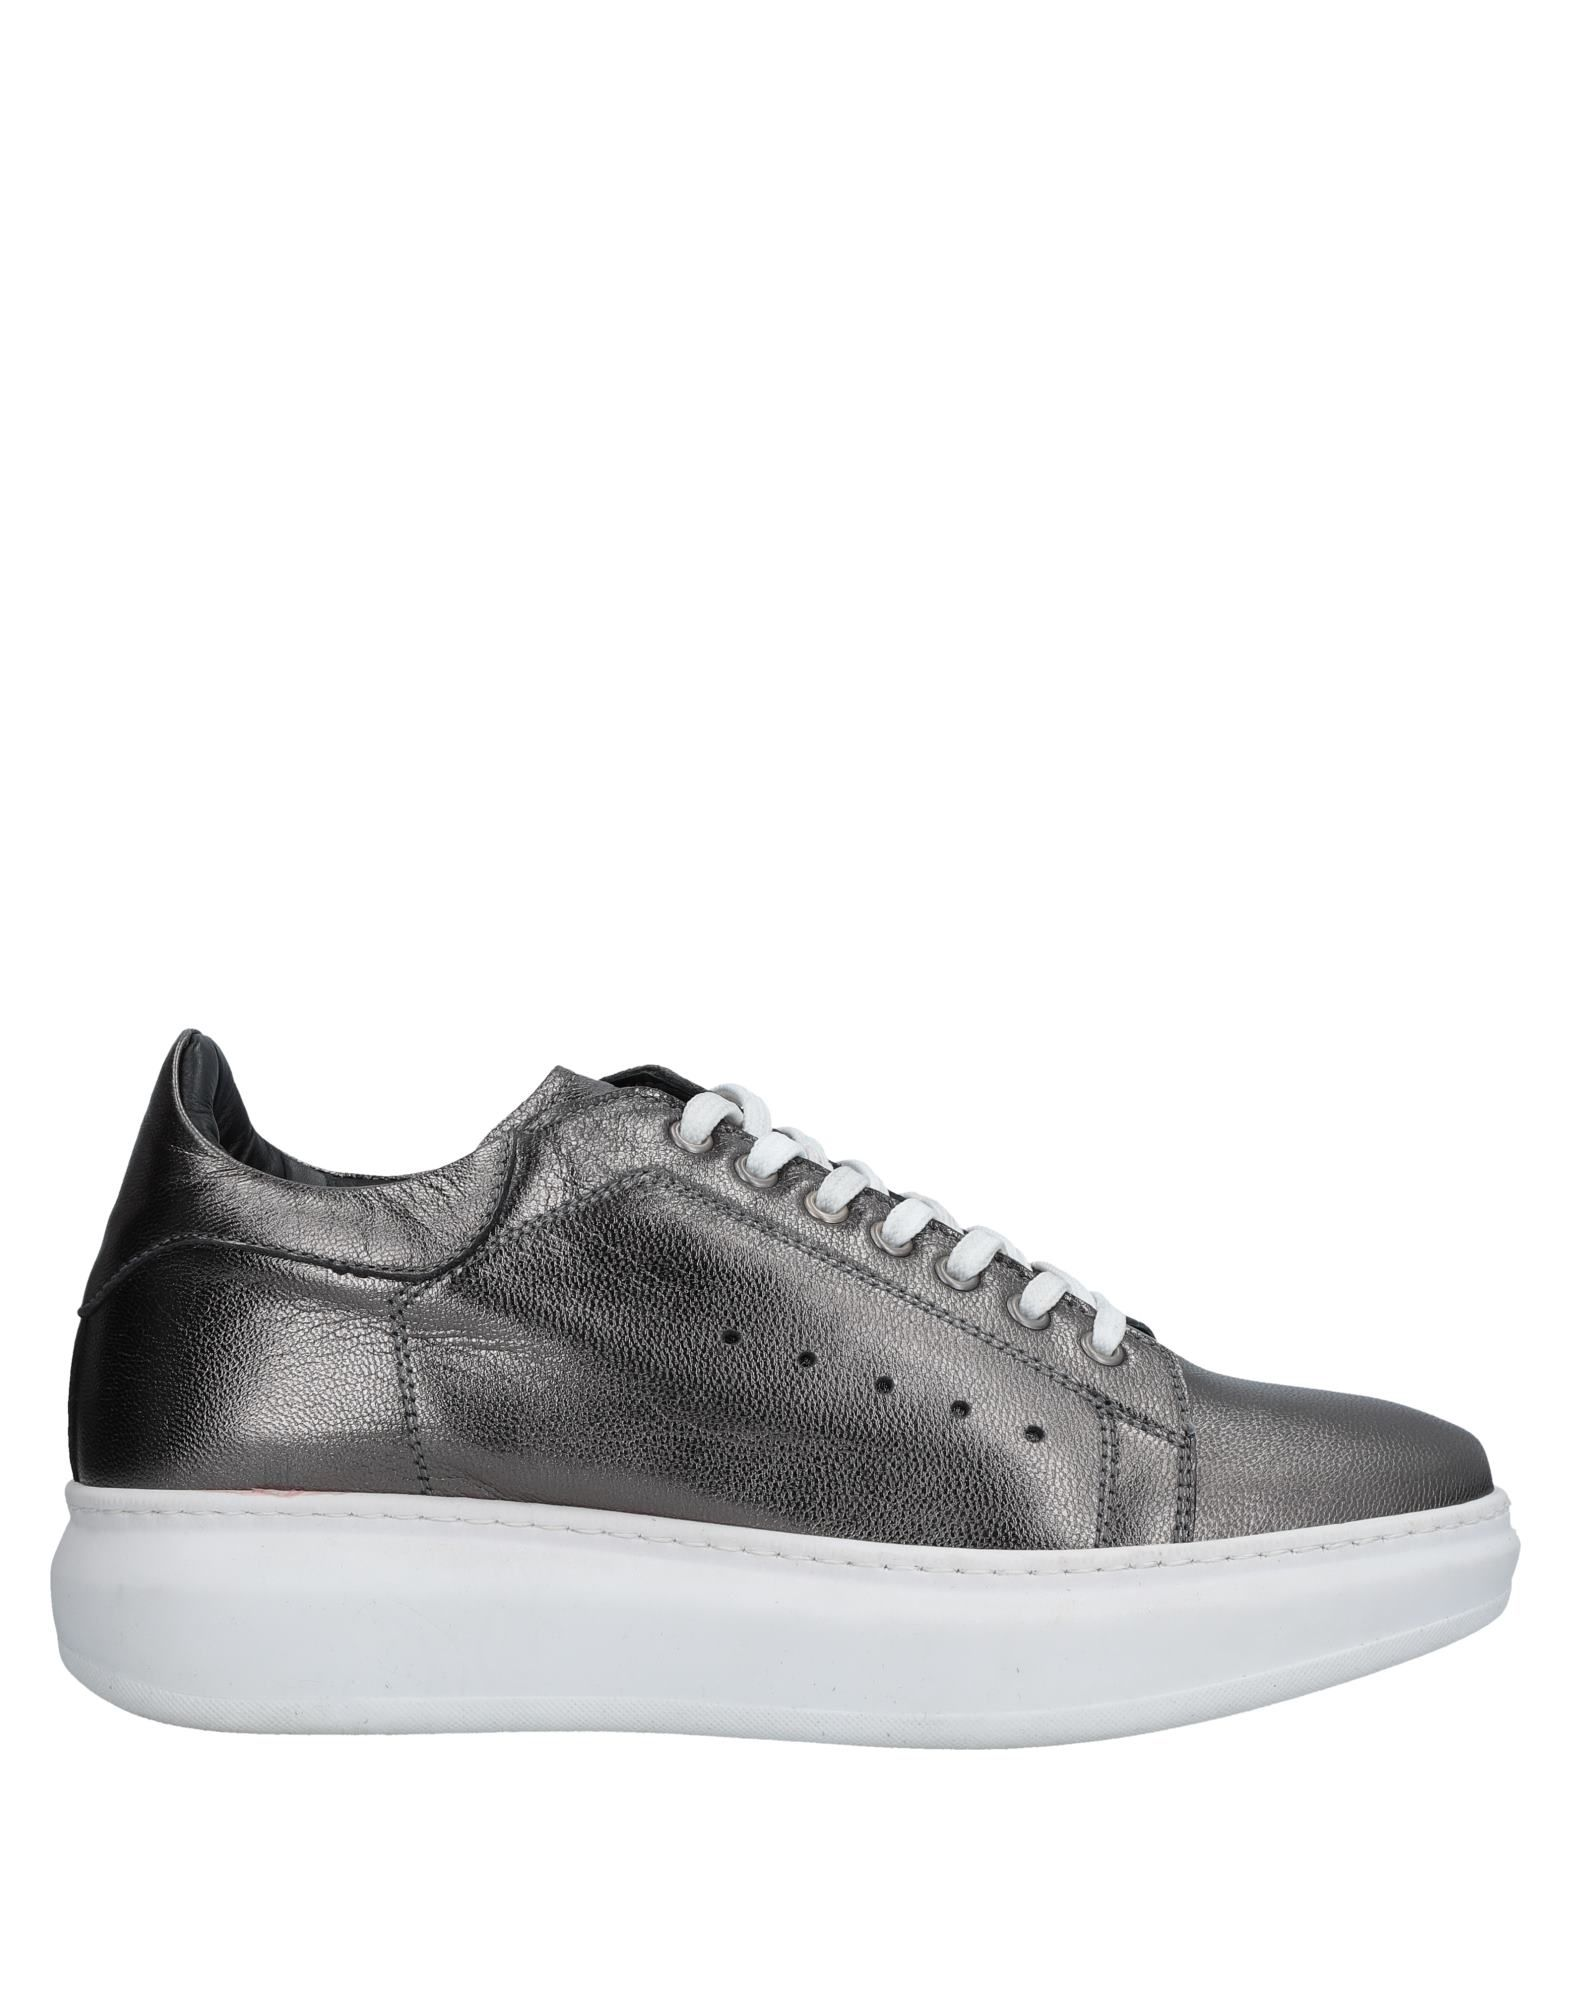 Sneakers Bottega Marchigiana Uomo - 11542384CW